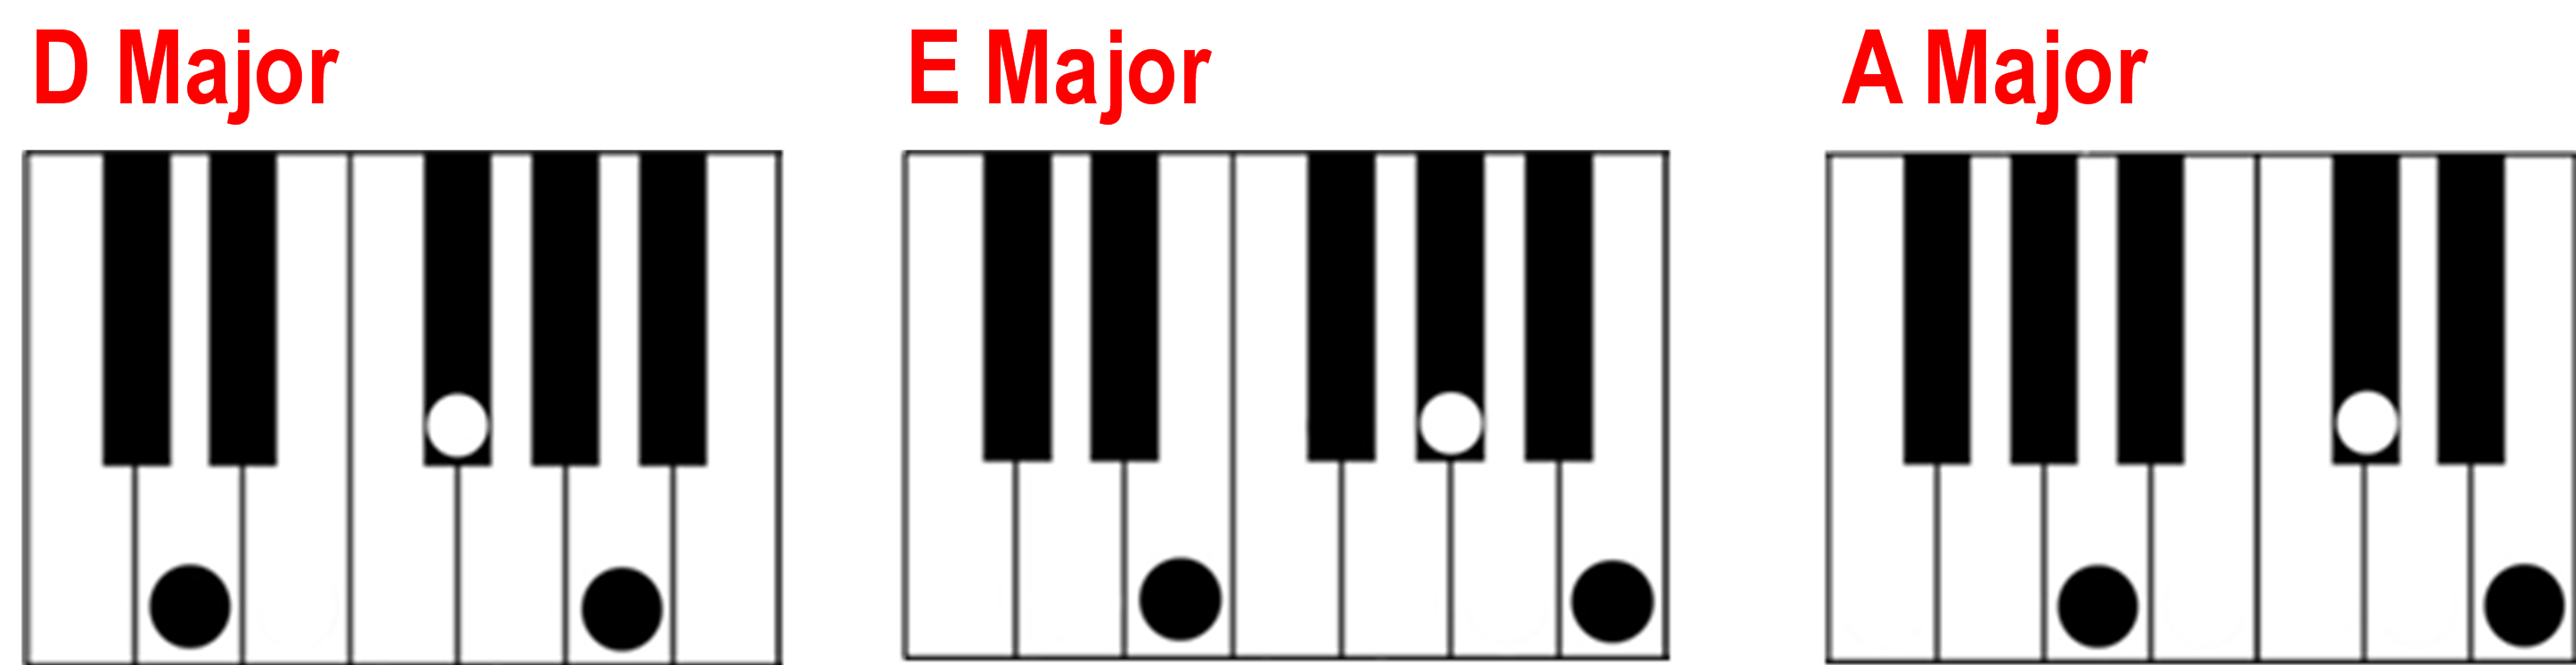 finding a major chord on the piano d e a major chords on the piano keyboard